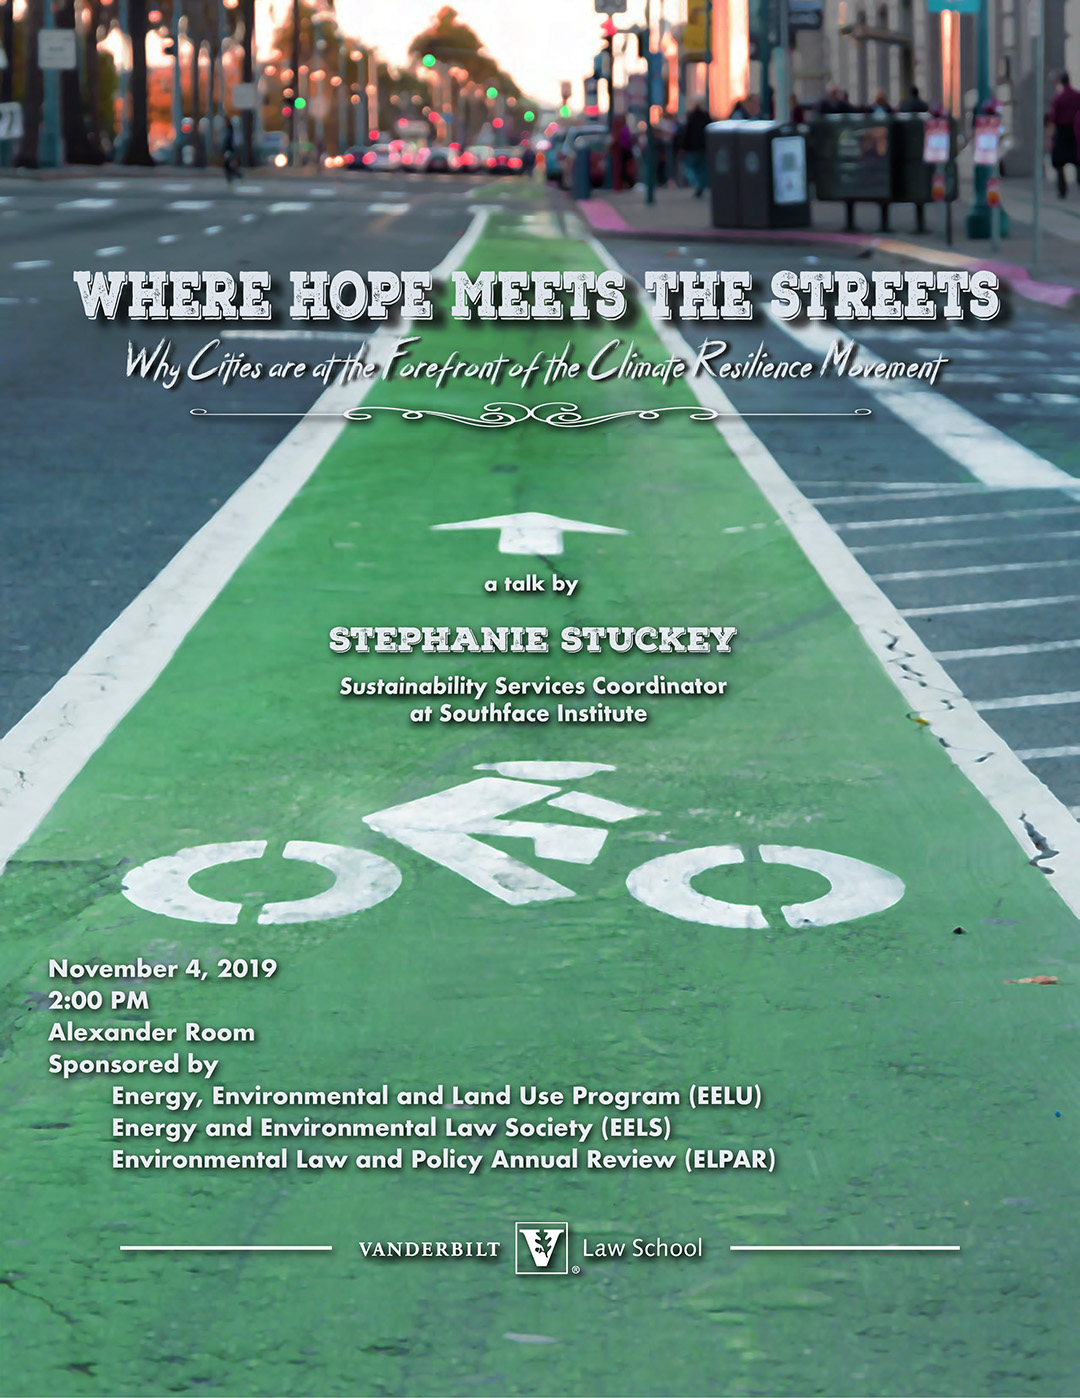 Where Hope Meets the street event poster image